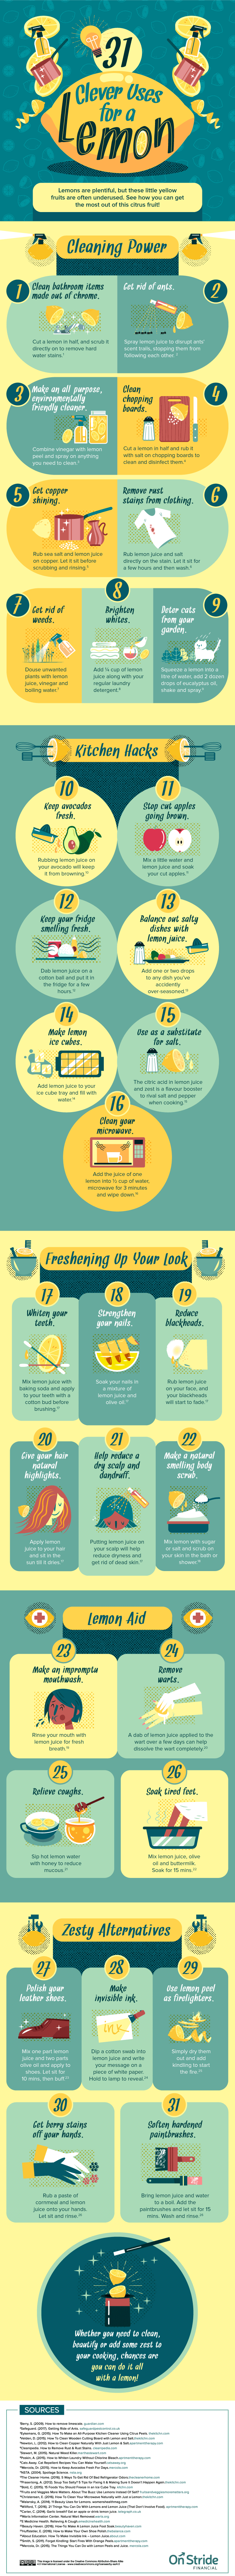 31 Surprising (But Smart) Uses For A Lemon Infographic